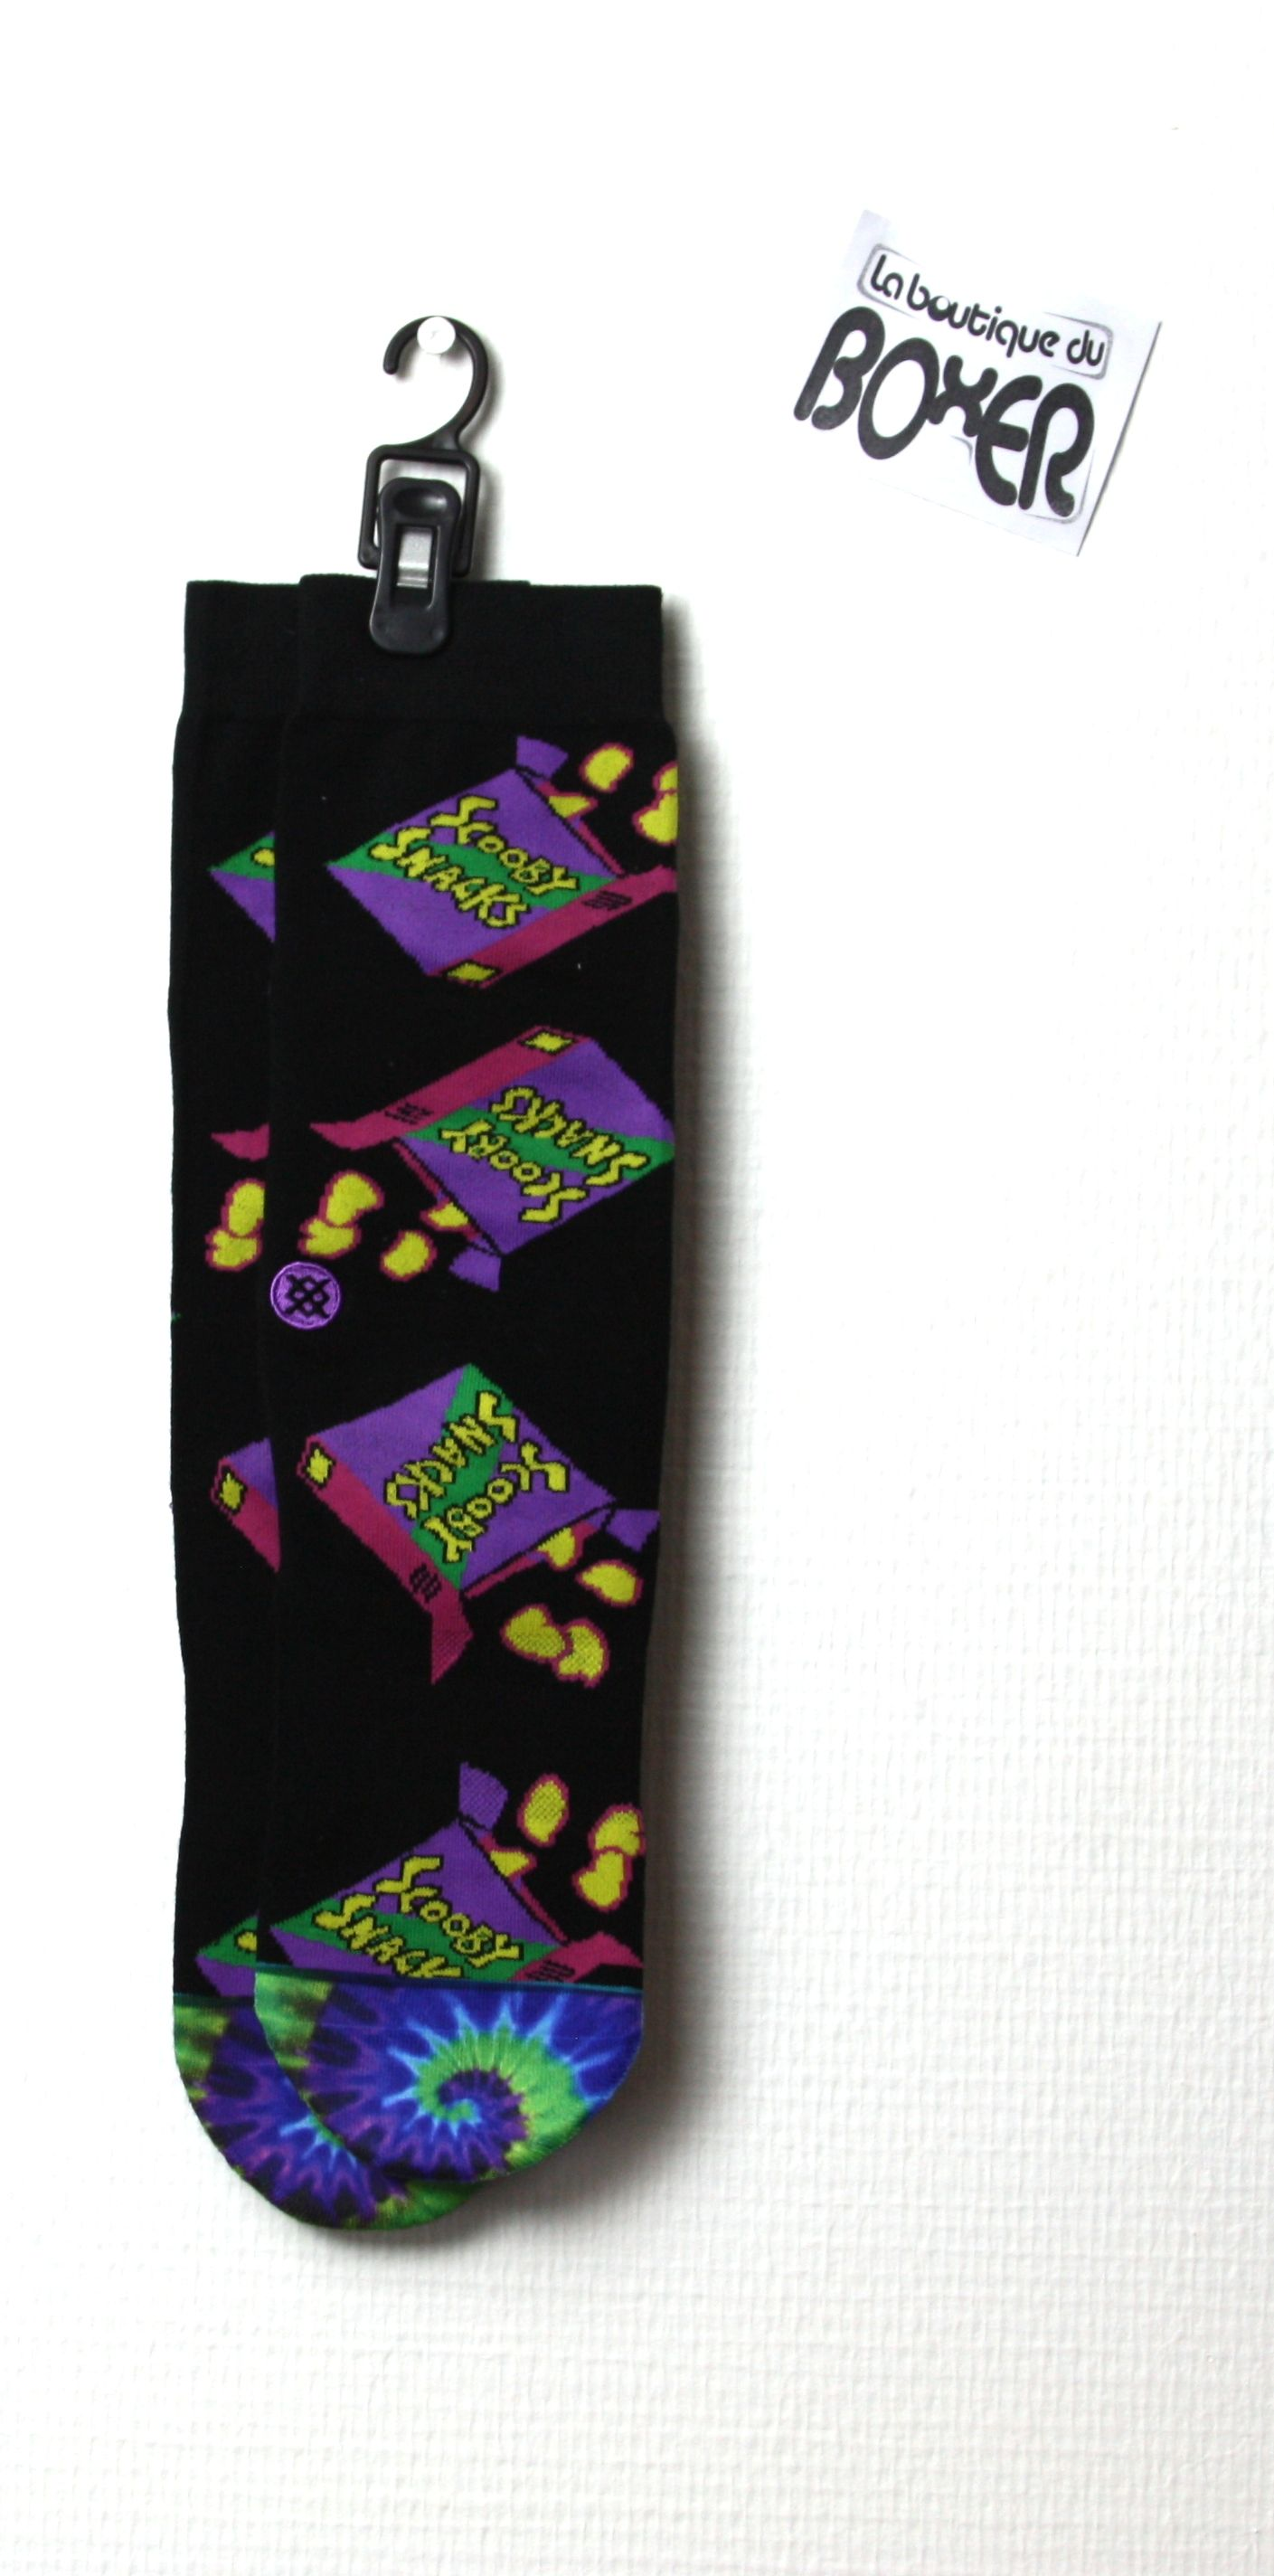 Stance Homme Scooby Doo Scooby Snacks Chaussettes Noir